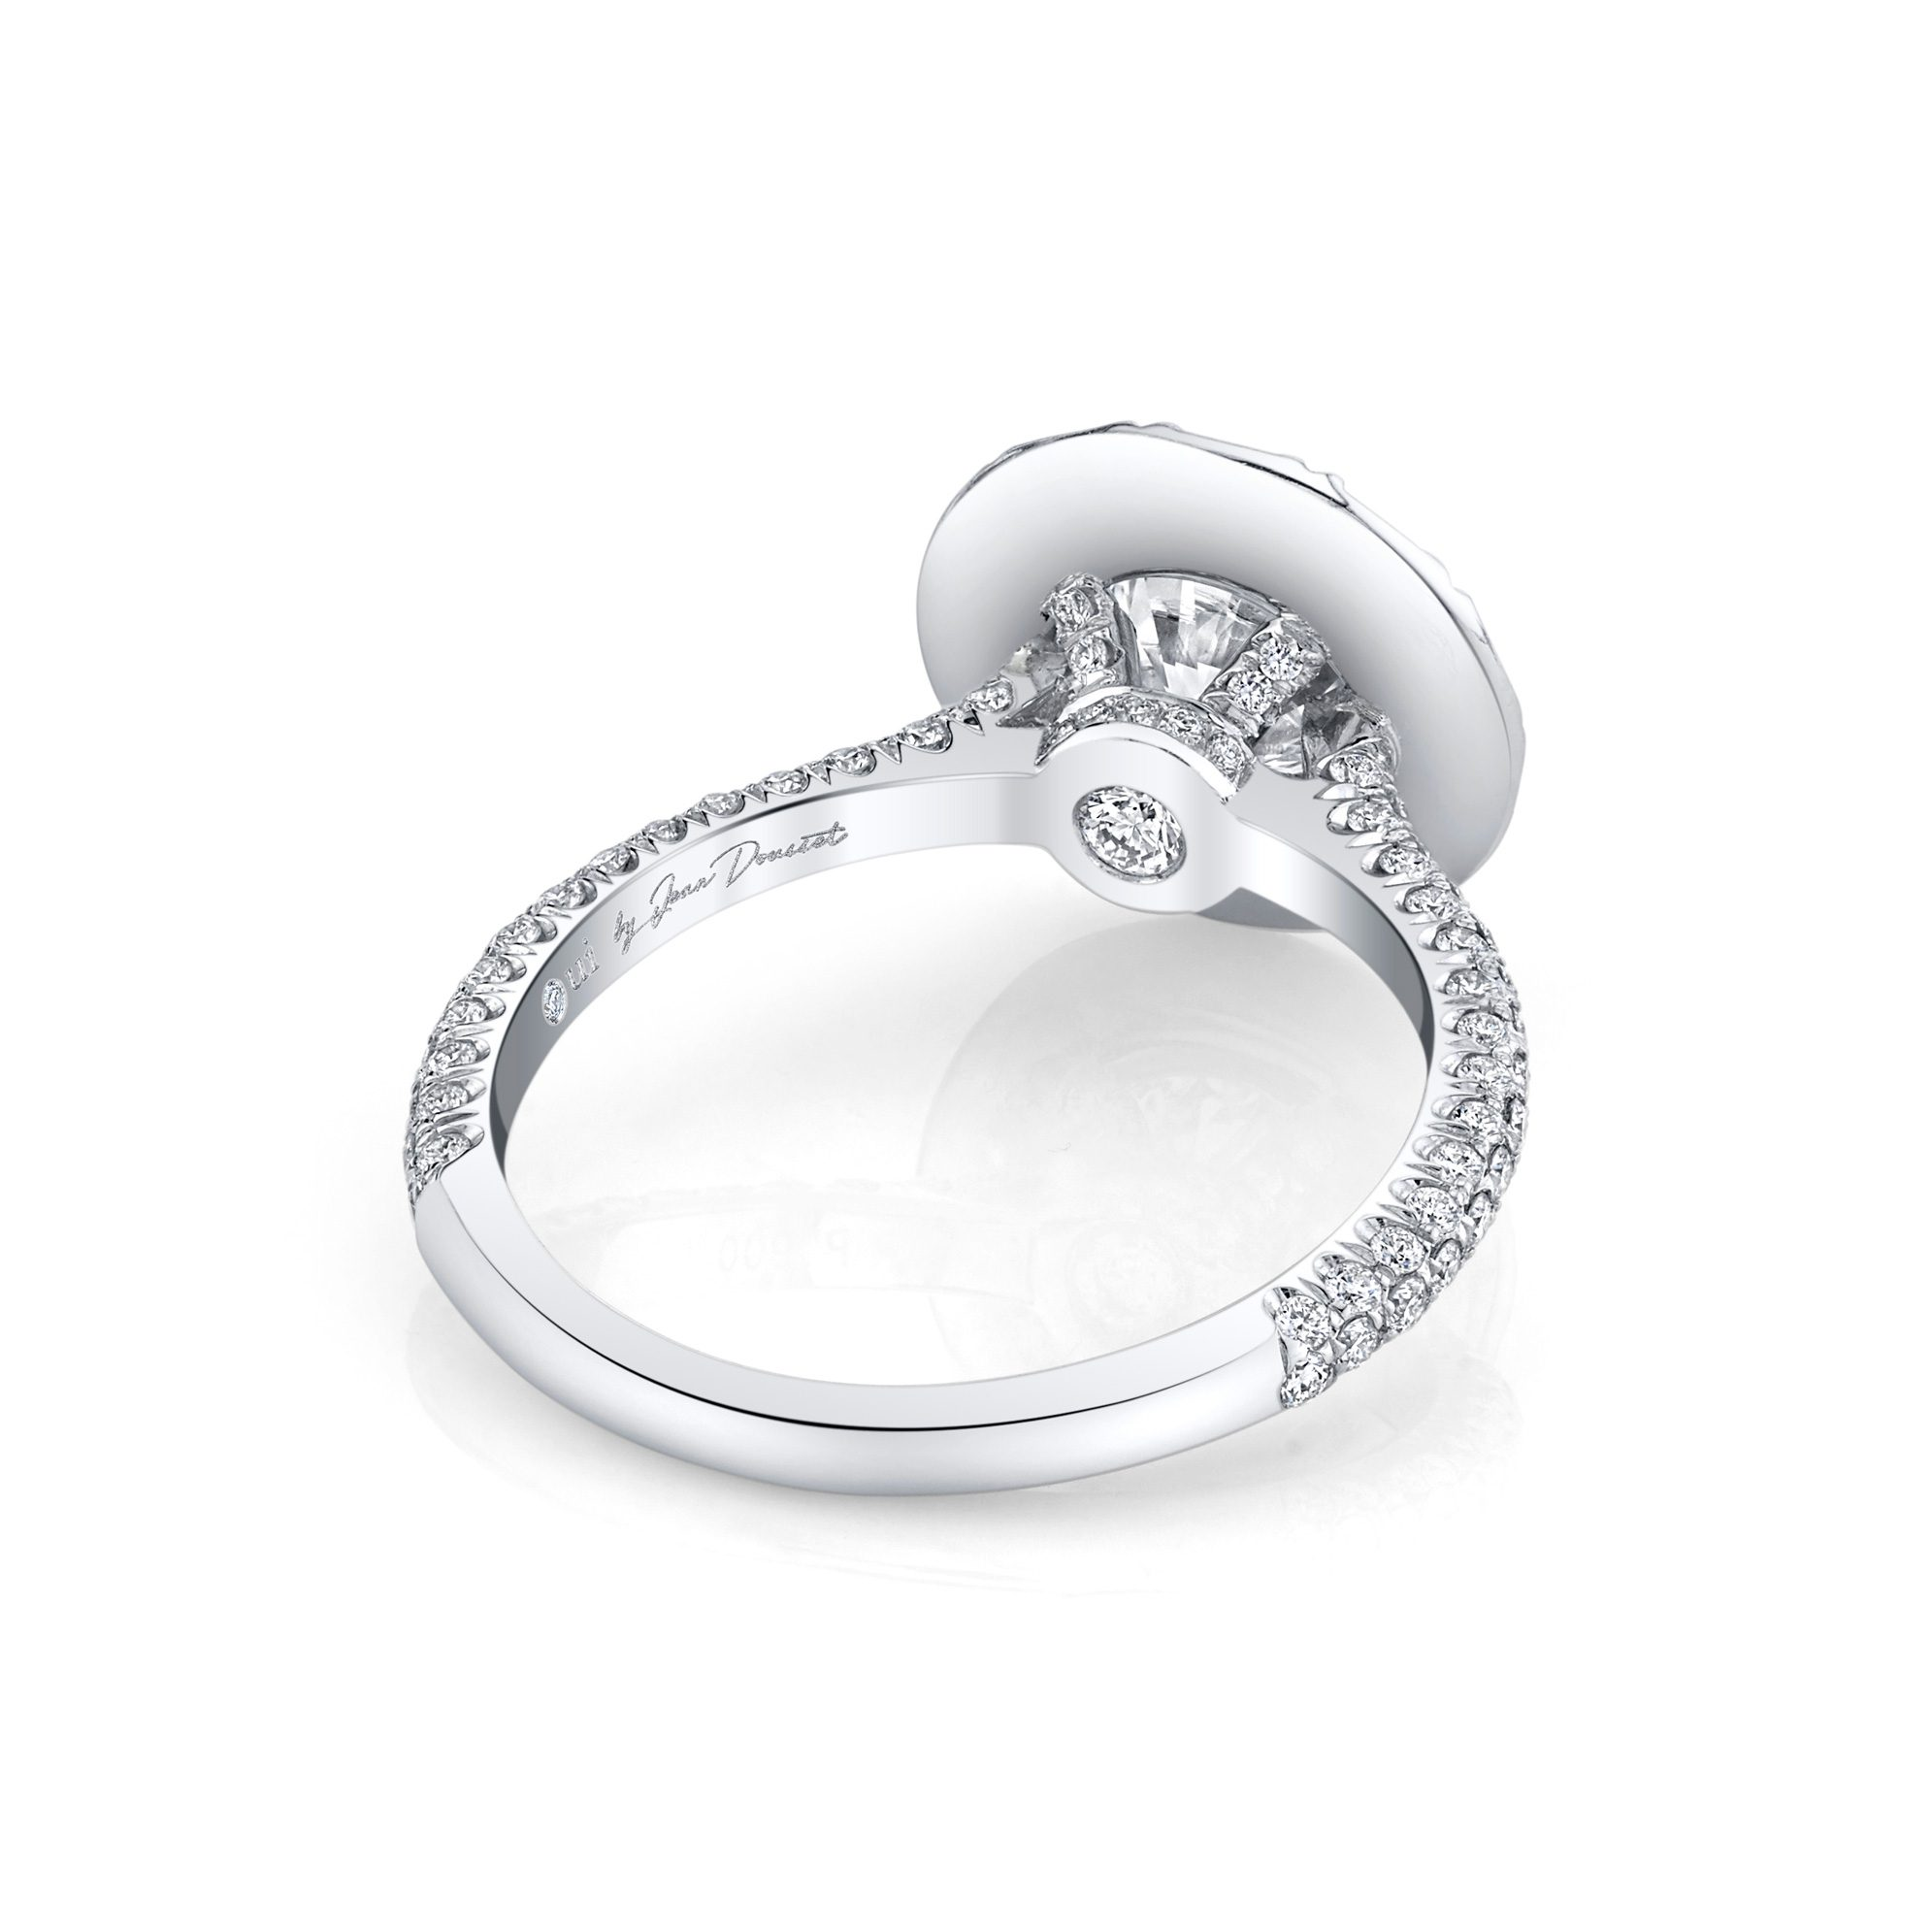 Jacqueline Round Brilliant Seamless Solitaire® Engagement Ring 18k White Gold Back View by Oui by Jean Dousset